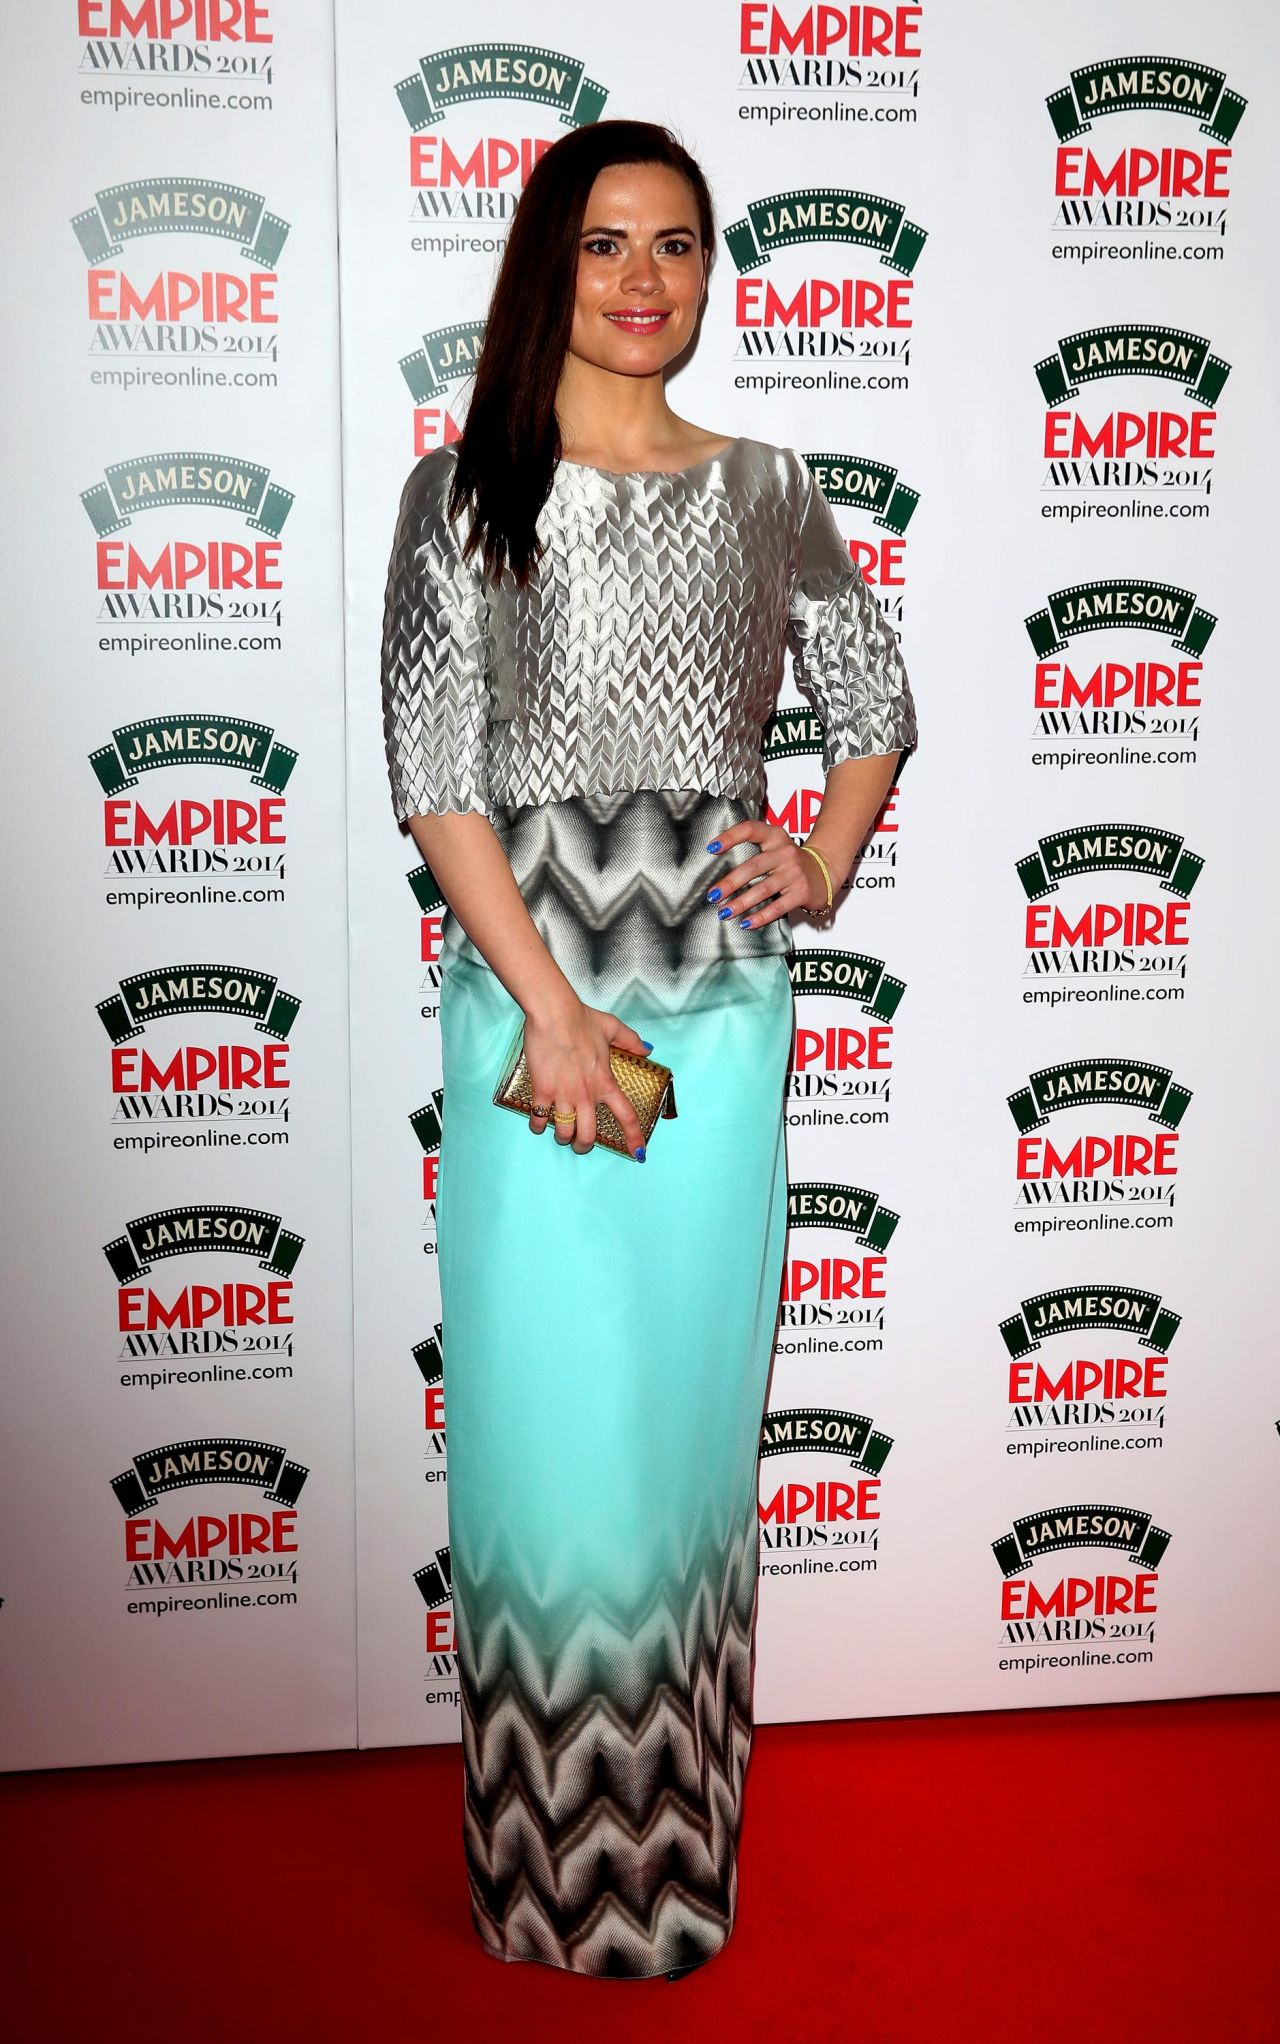 Hayley Atwell Wearing Georgia Hardinge Dress - Jameson Empire Awards 2014